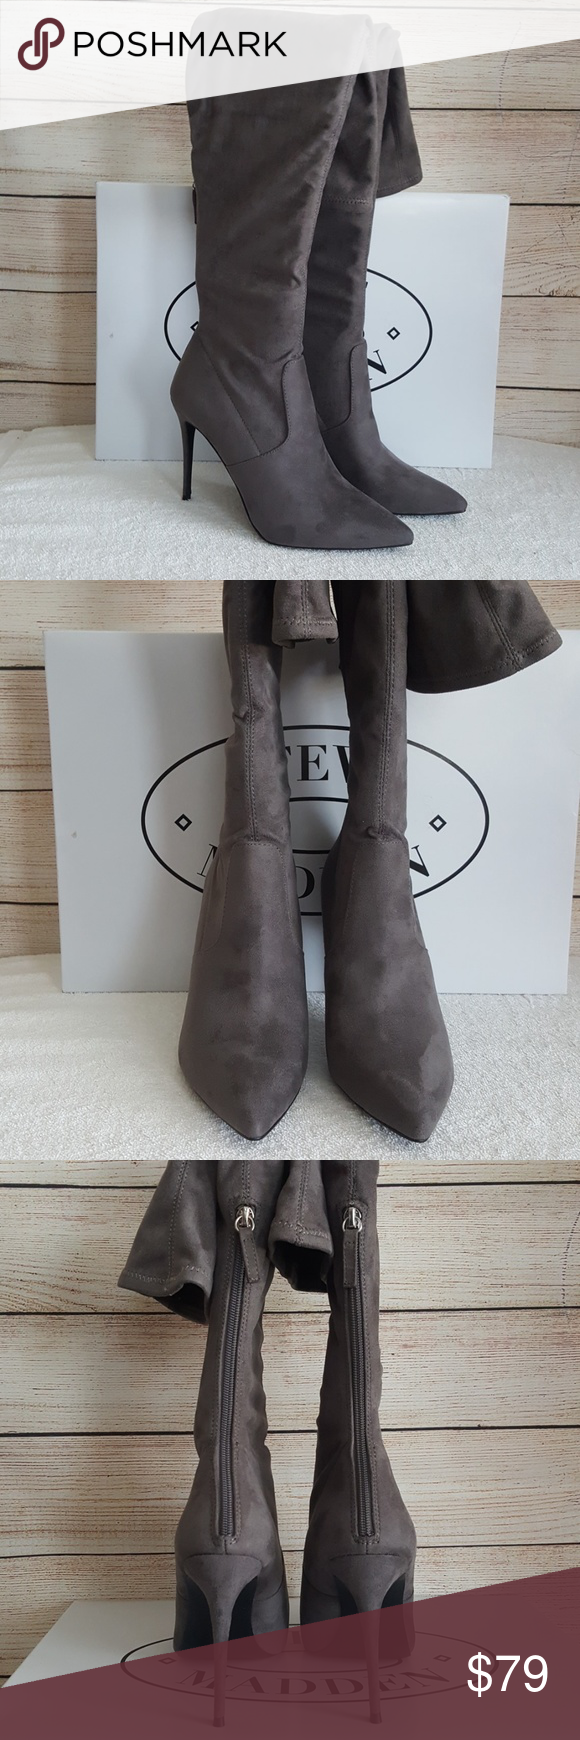 bcc9d275b2a New Steve Madden Devine Over The Knee Boot New never worn 4.5